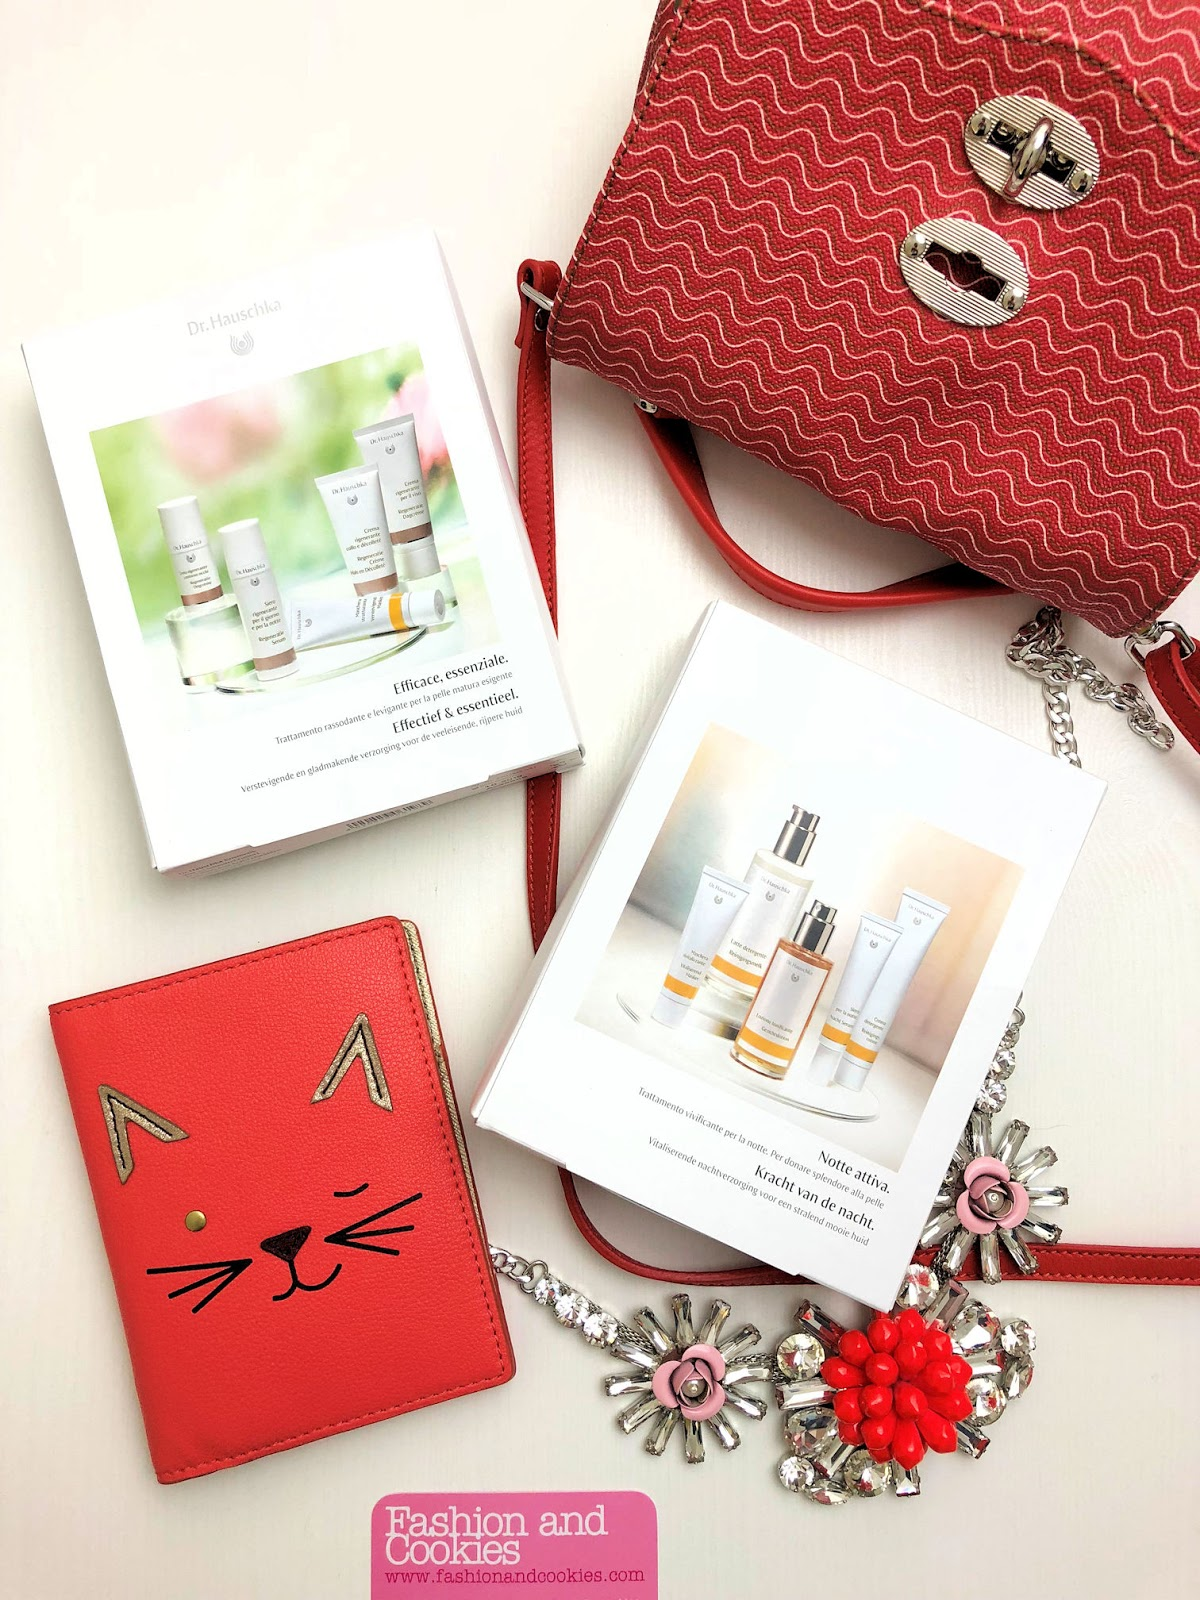 Come viaggiare leggere: Coffret Dr. Hauschka su Fashion and Cookies beauty blog, beauty blogger